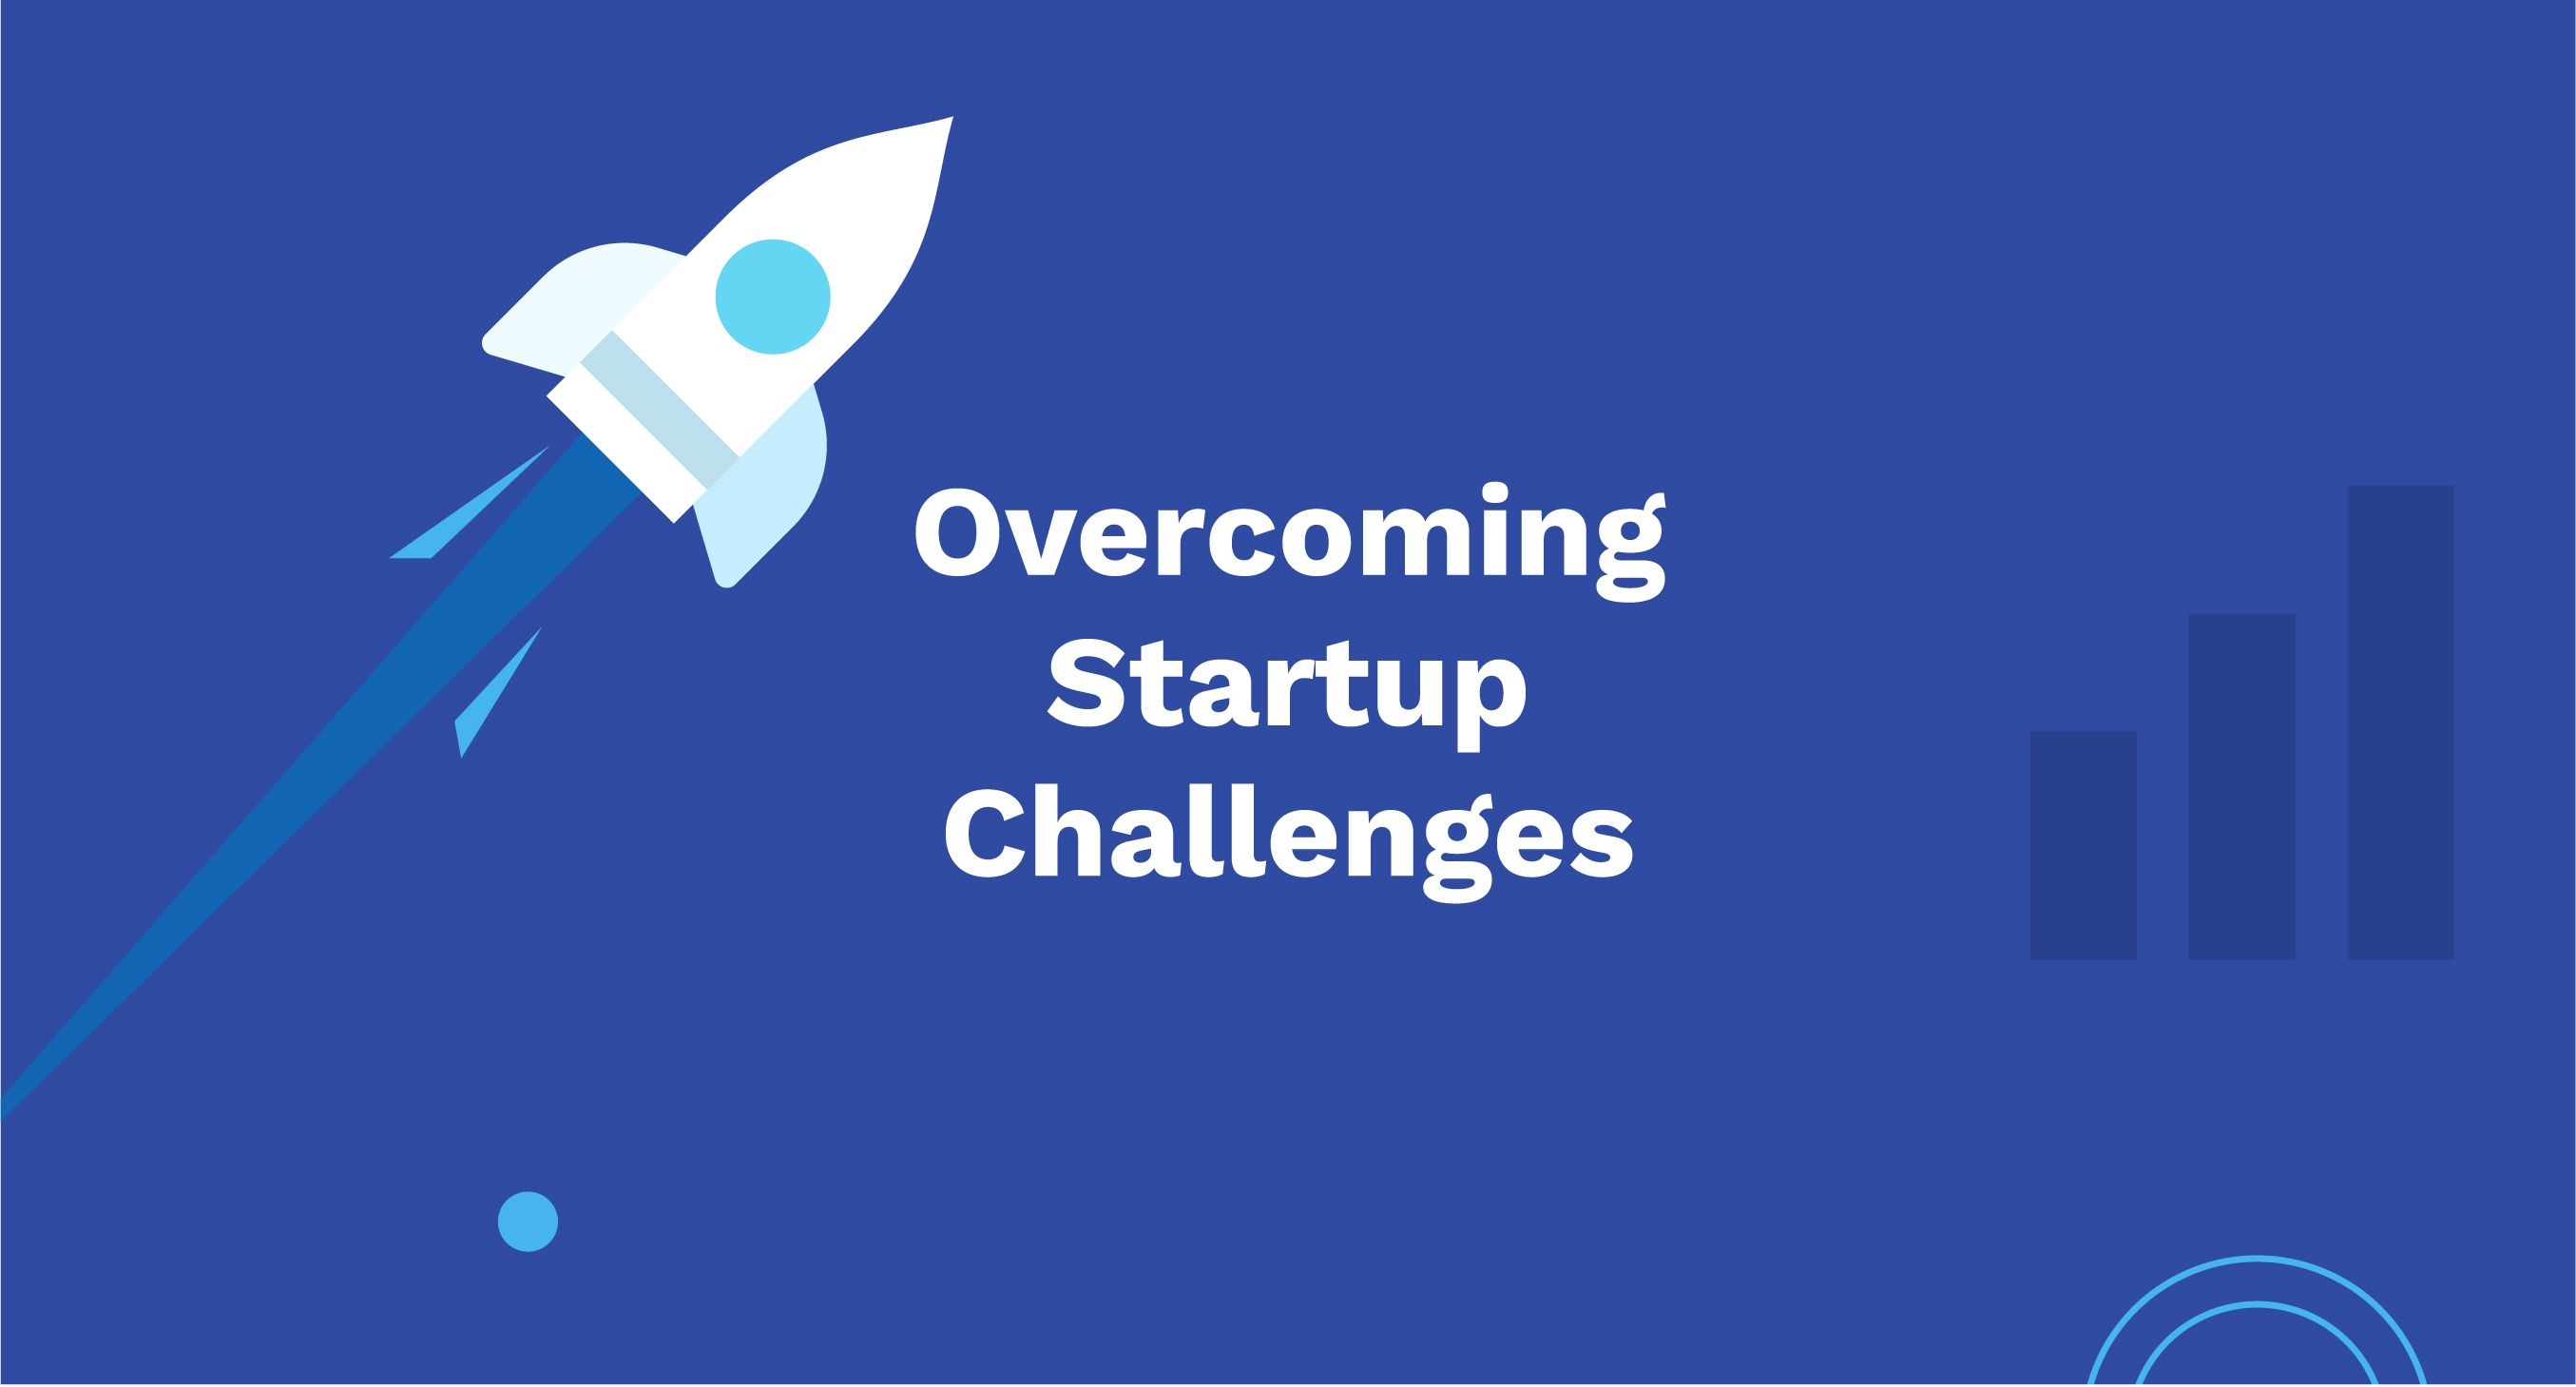 Overcoming startup challenges.